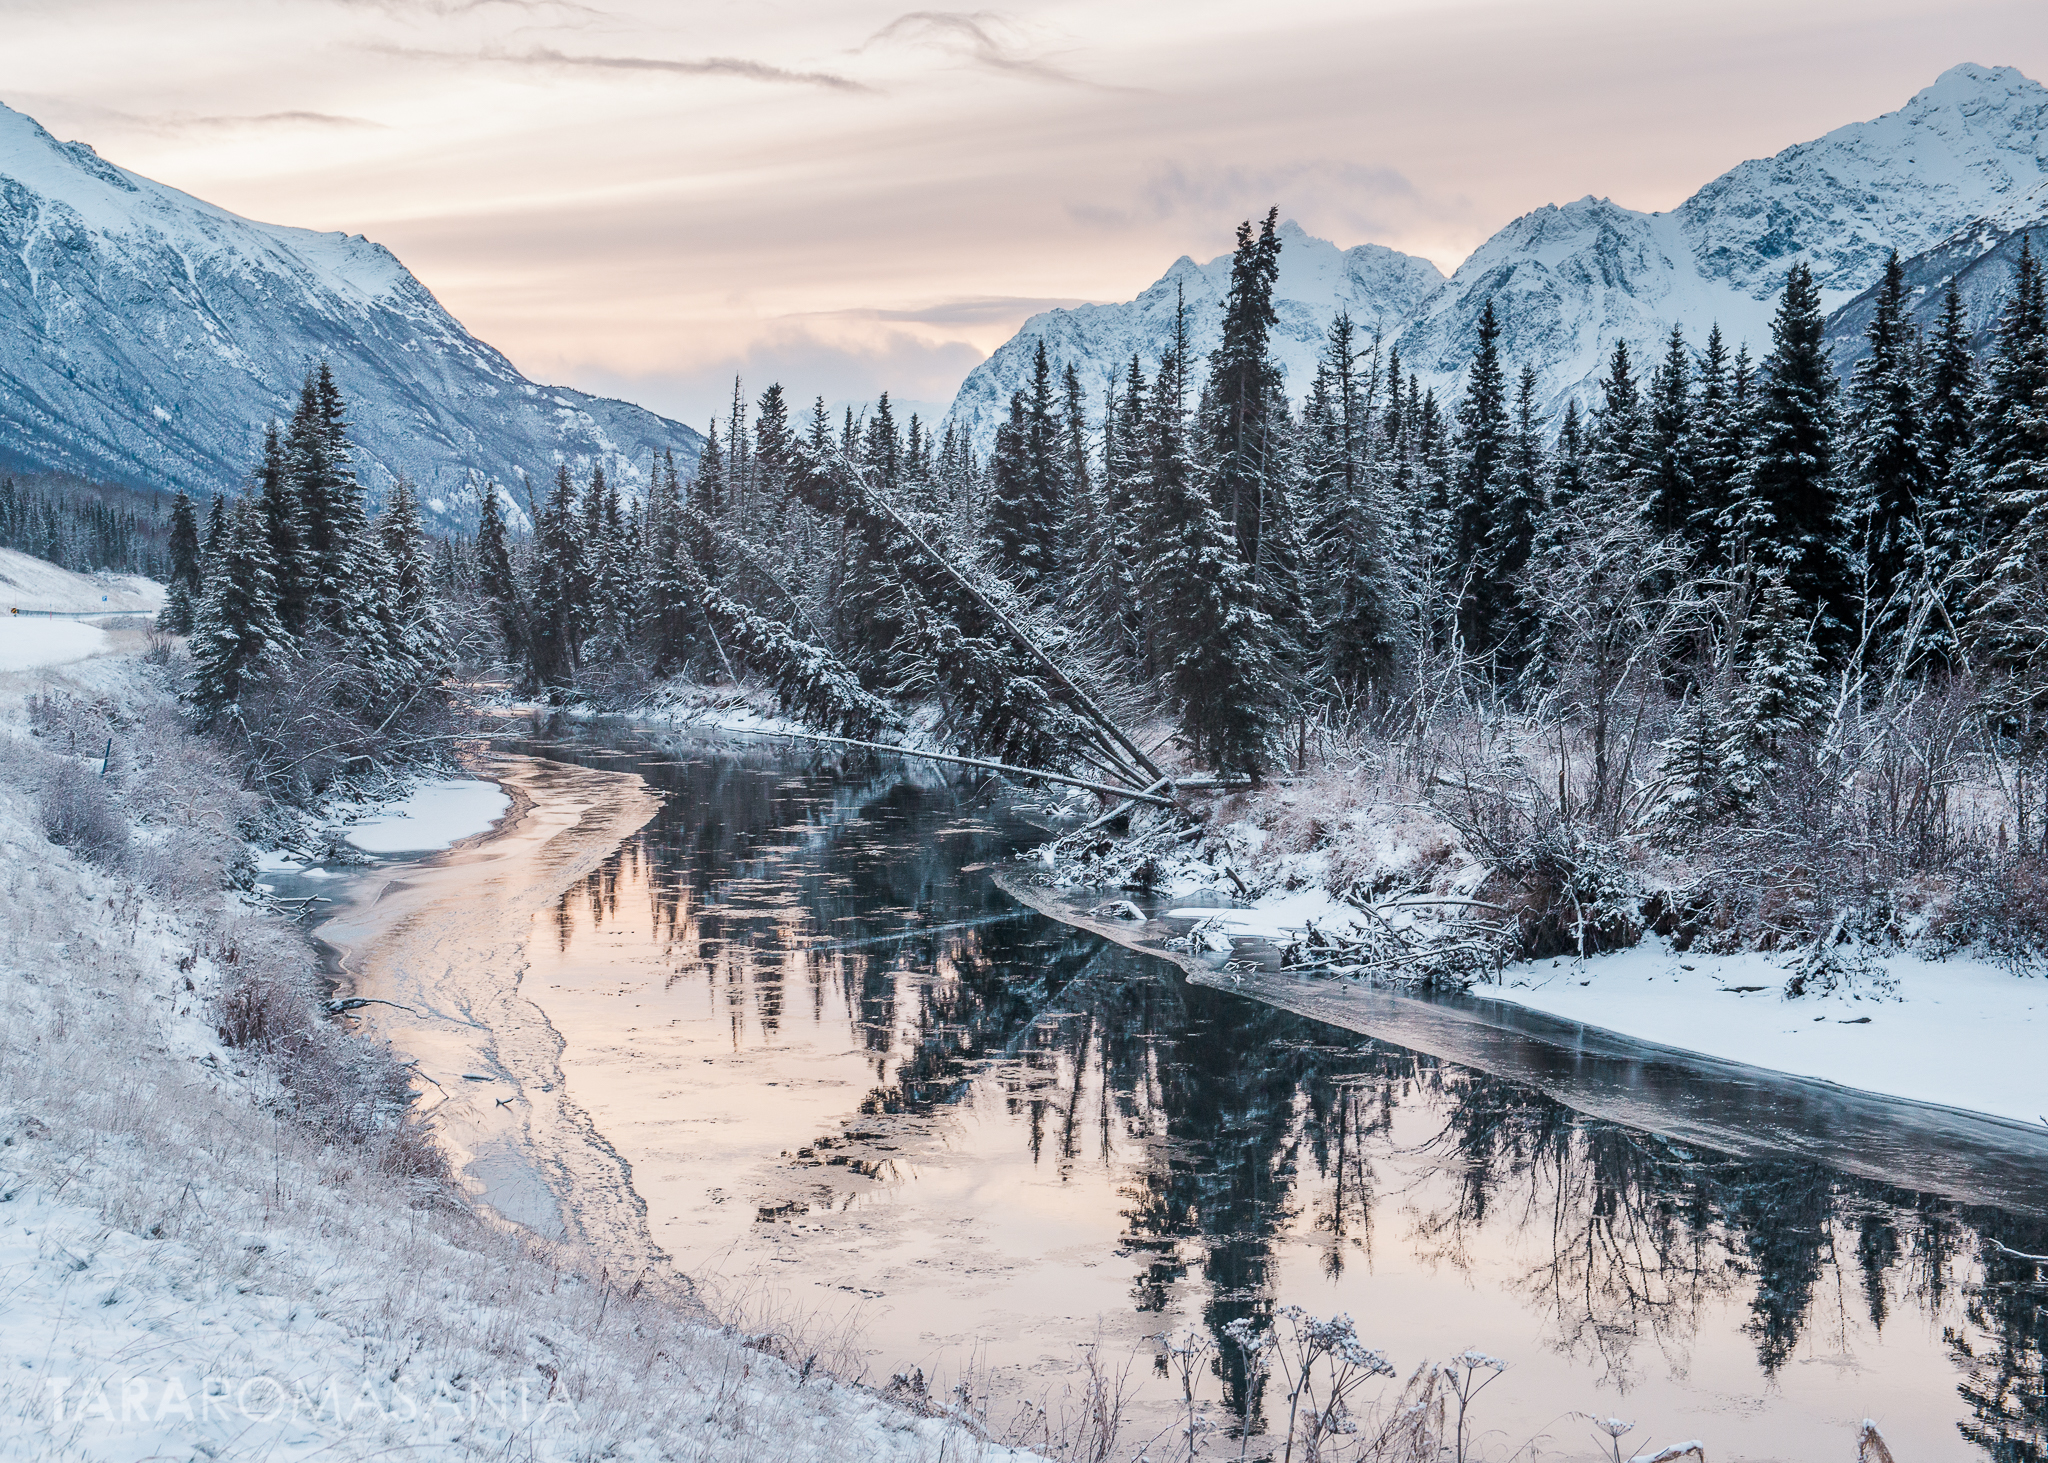 The reflections and wintery morning pastels made this a favorite landscape shot.